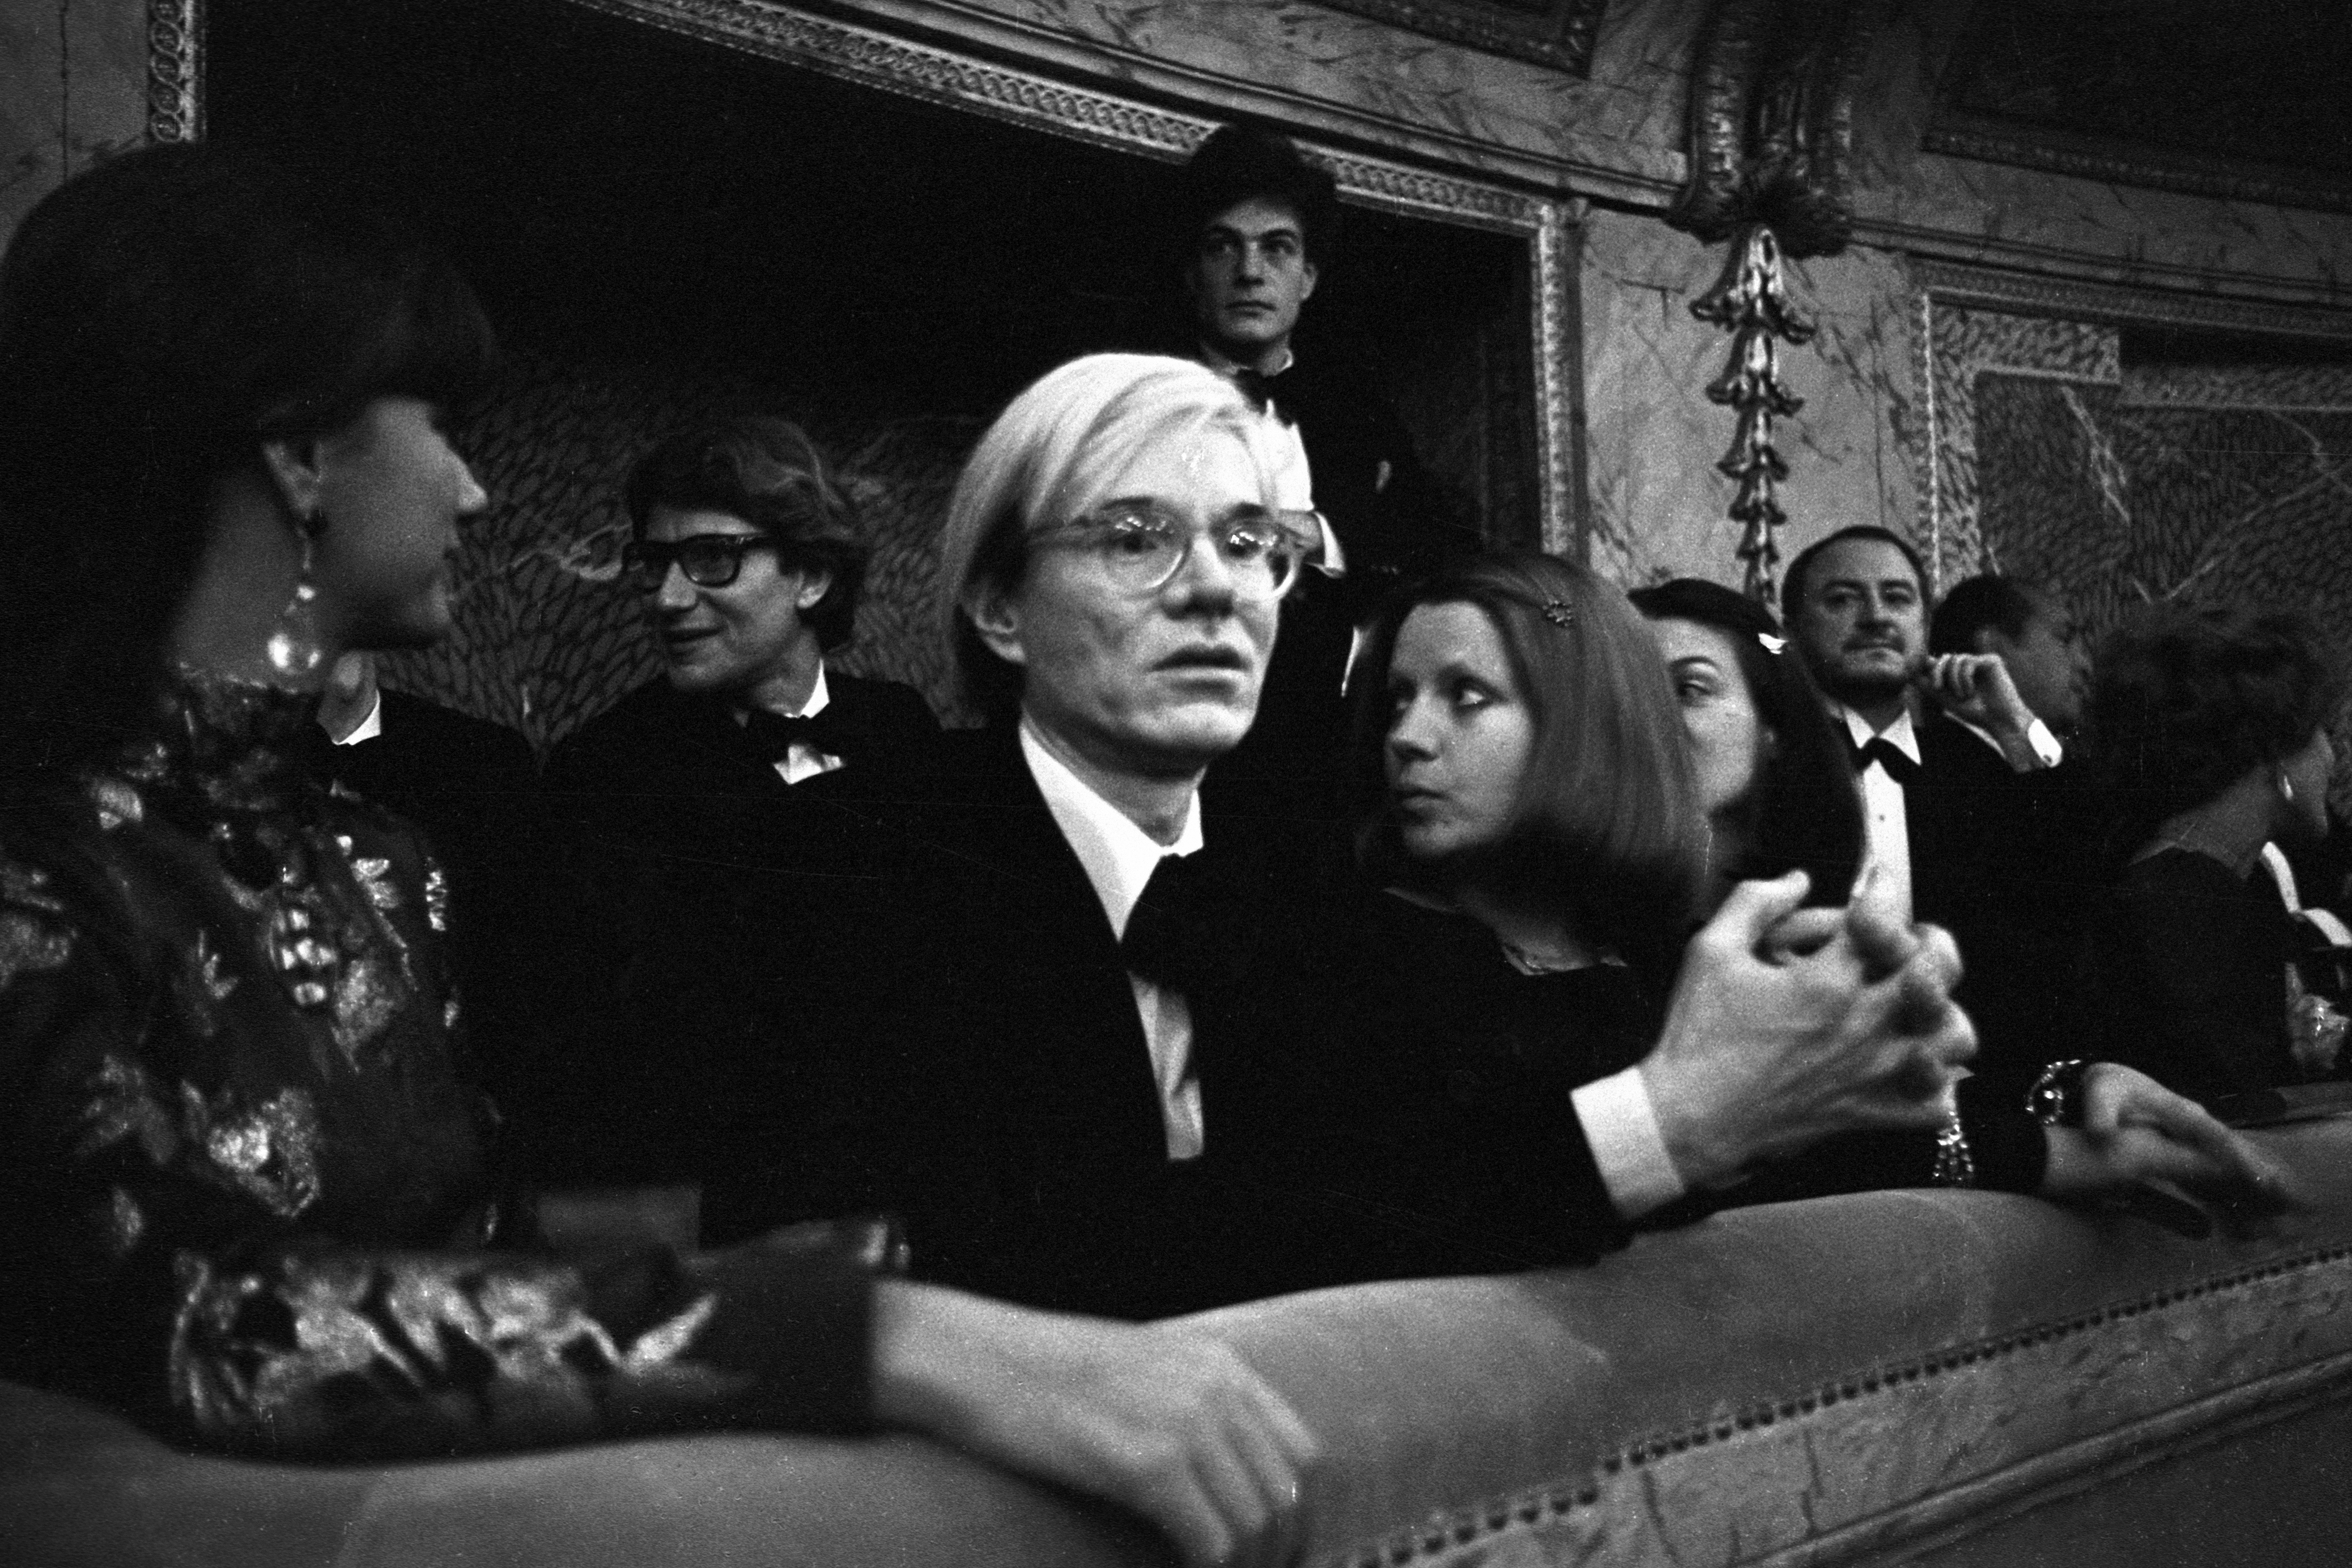 Andy Warhol, Yves Saint Laurent, Mary Russell and Pierre Berge during the fashion show to benefit the restoration of the Chateau of Versailles, on November 28, 1973 in Versailles,